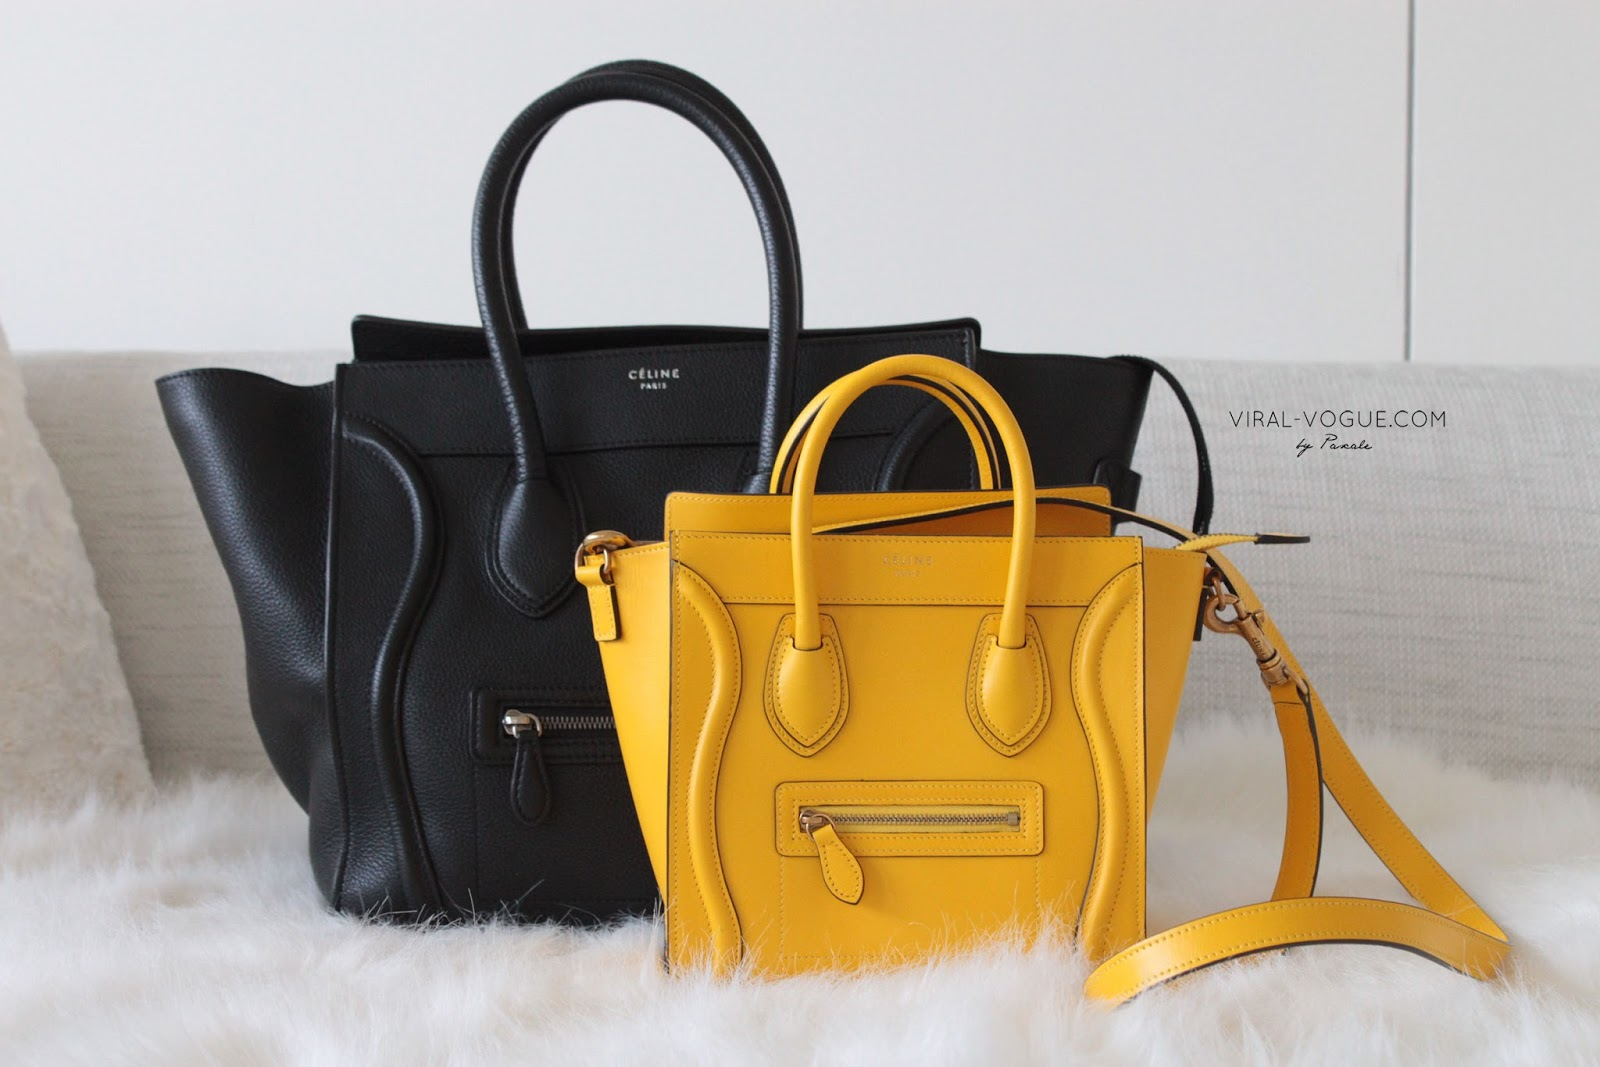 buy celine bags online - VIRAL-VOGUE: C��line Luggage comparison & review (C��line Mini X ...